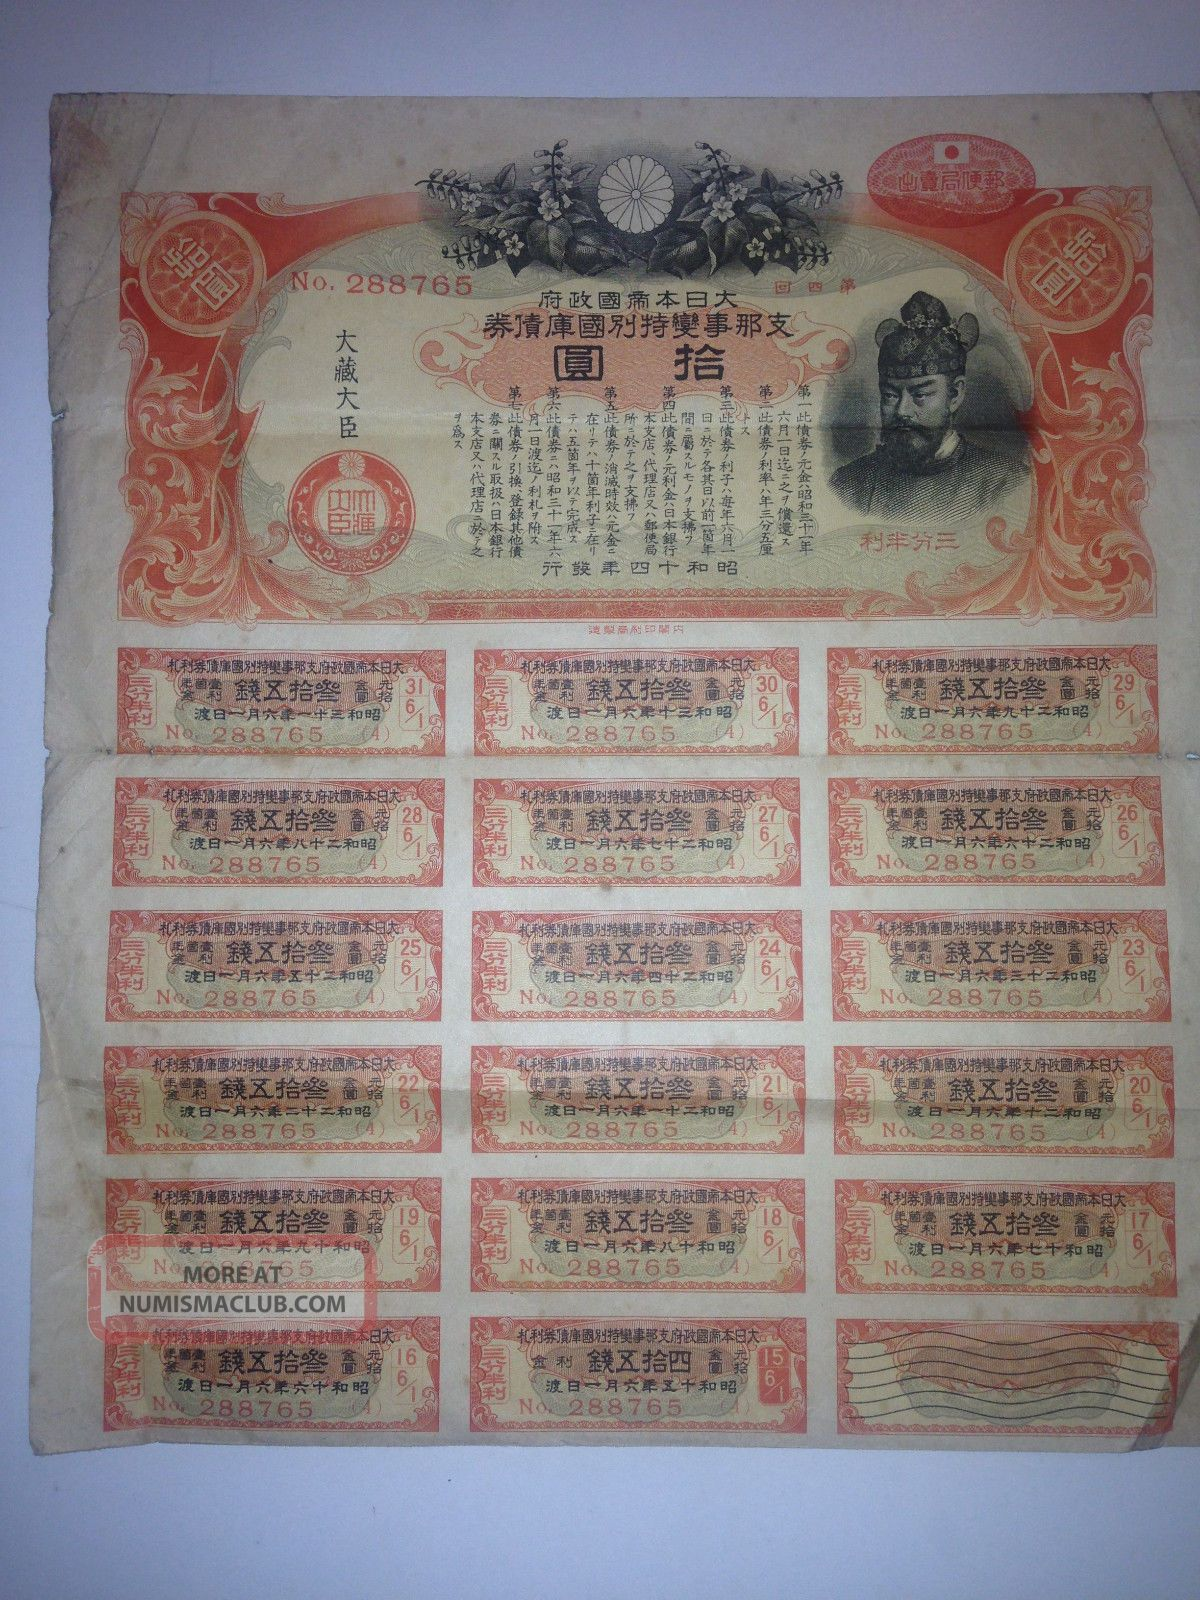 No Cut Ww2 Imperial Government Bond Of Japan.  Sino - Japanese War.  Japan - China War Stocks & Bonds, Scripophily photo